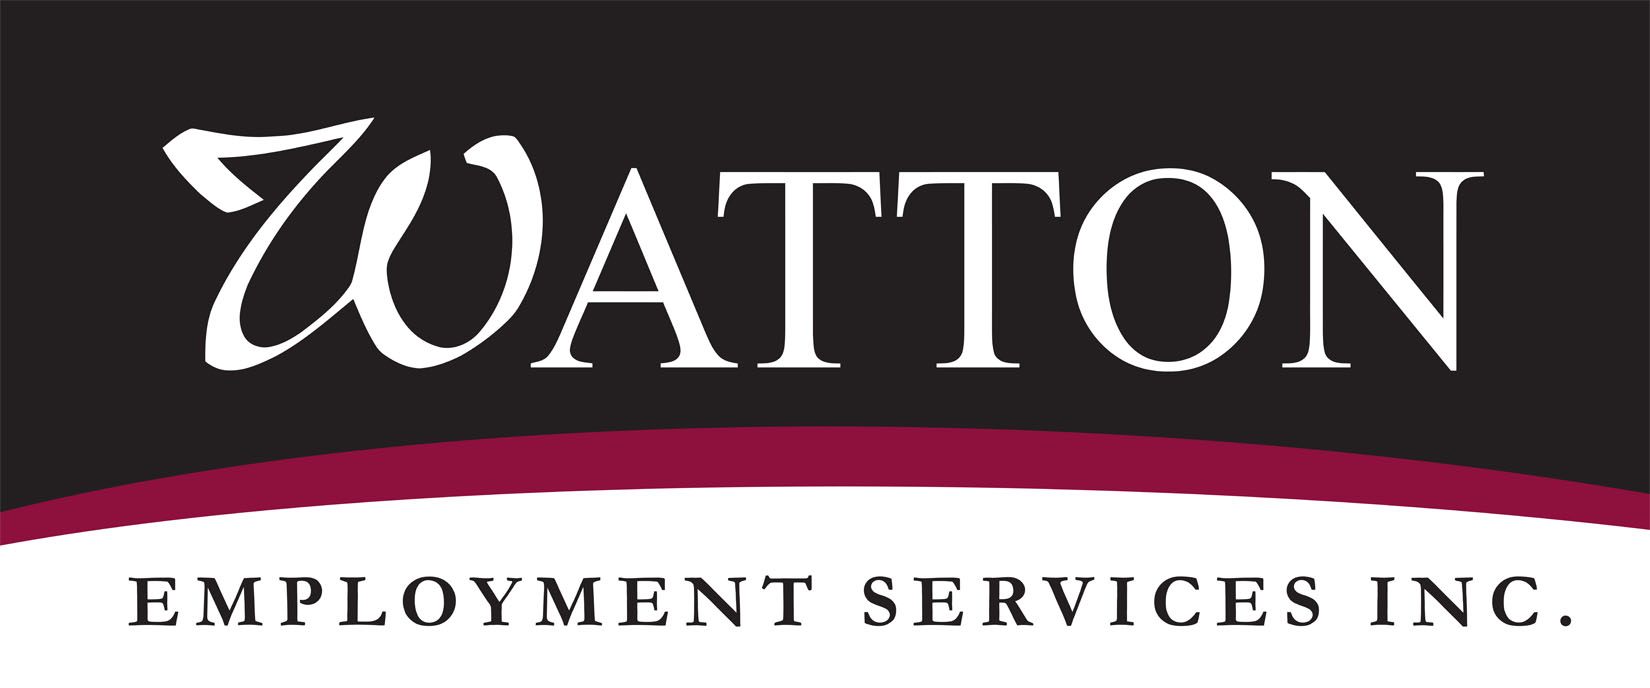 Watton Employment Services Inc. Logo